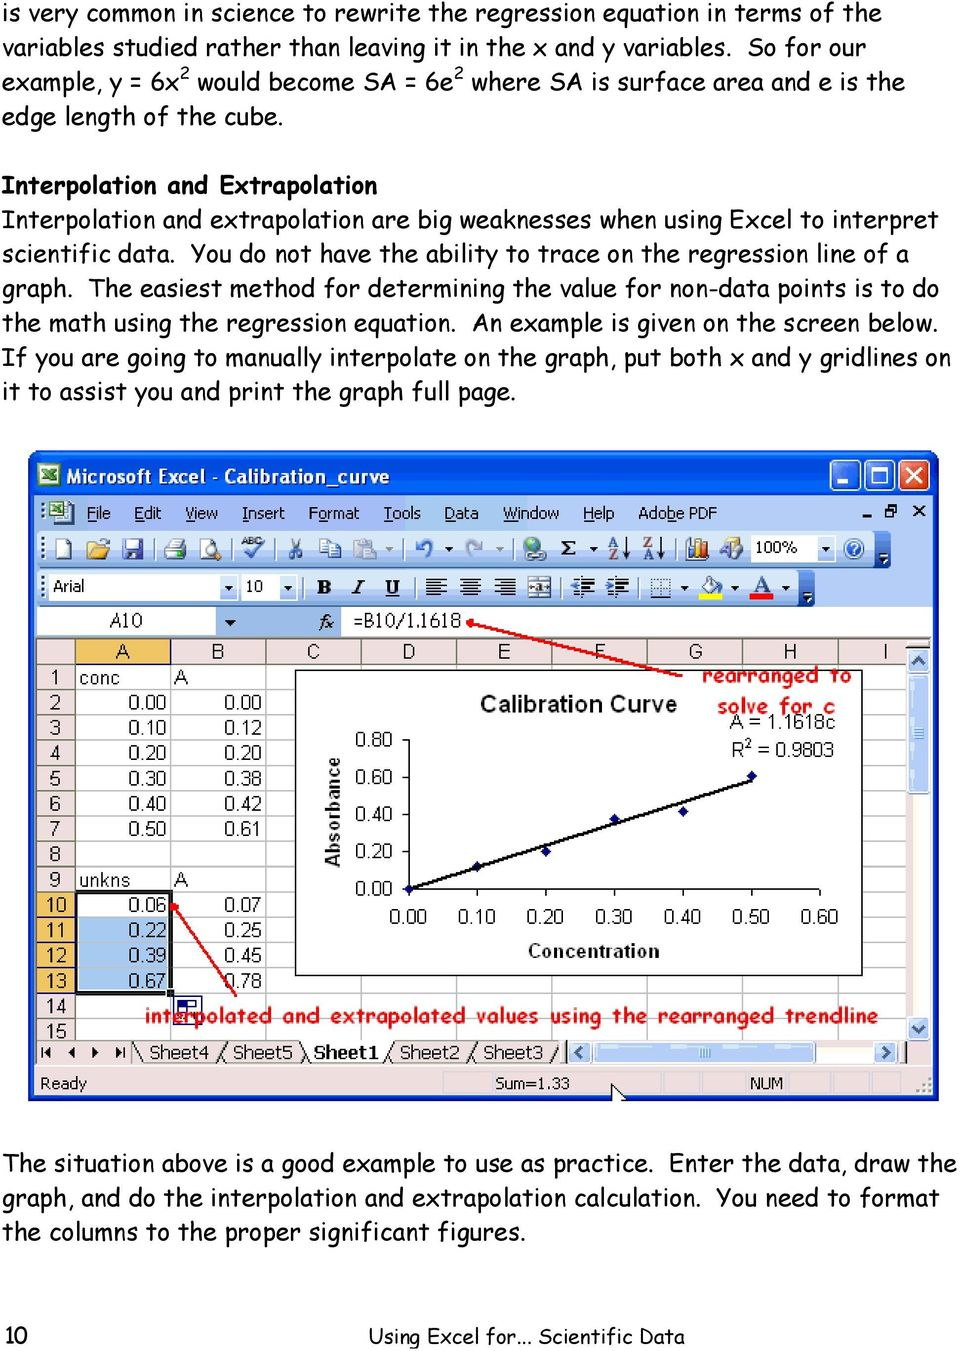 Using Excel for Handling, Graphing, and Analyzing Scientific